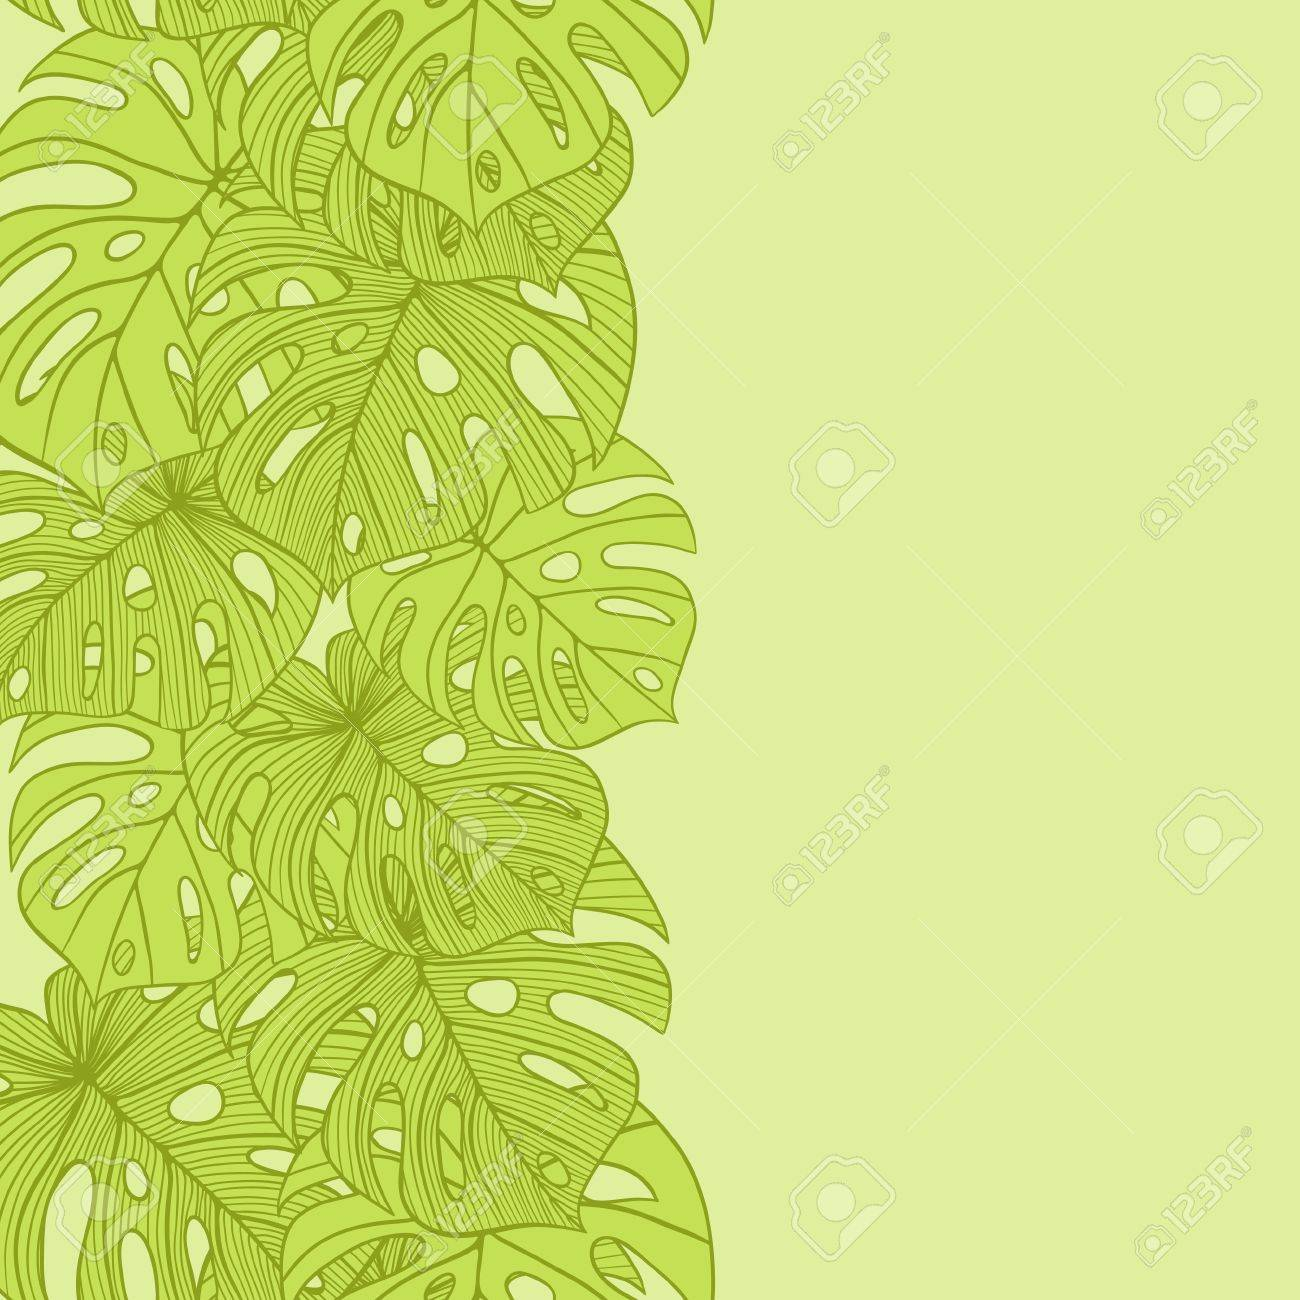 Fabric tree pattern - Vector Illustration Leaves Of Palm Tree Seamless Pattern